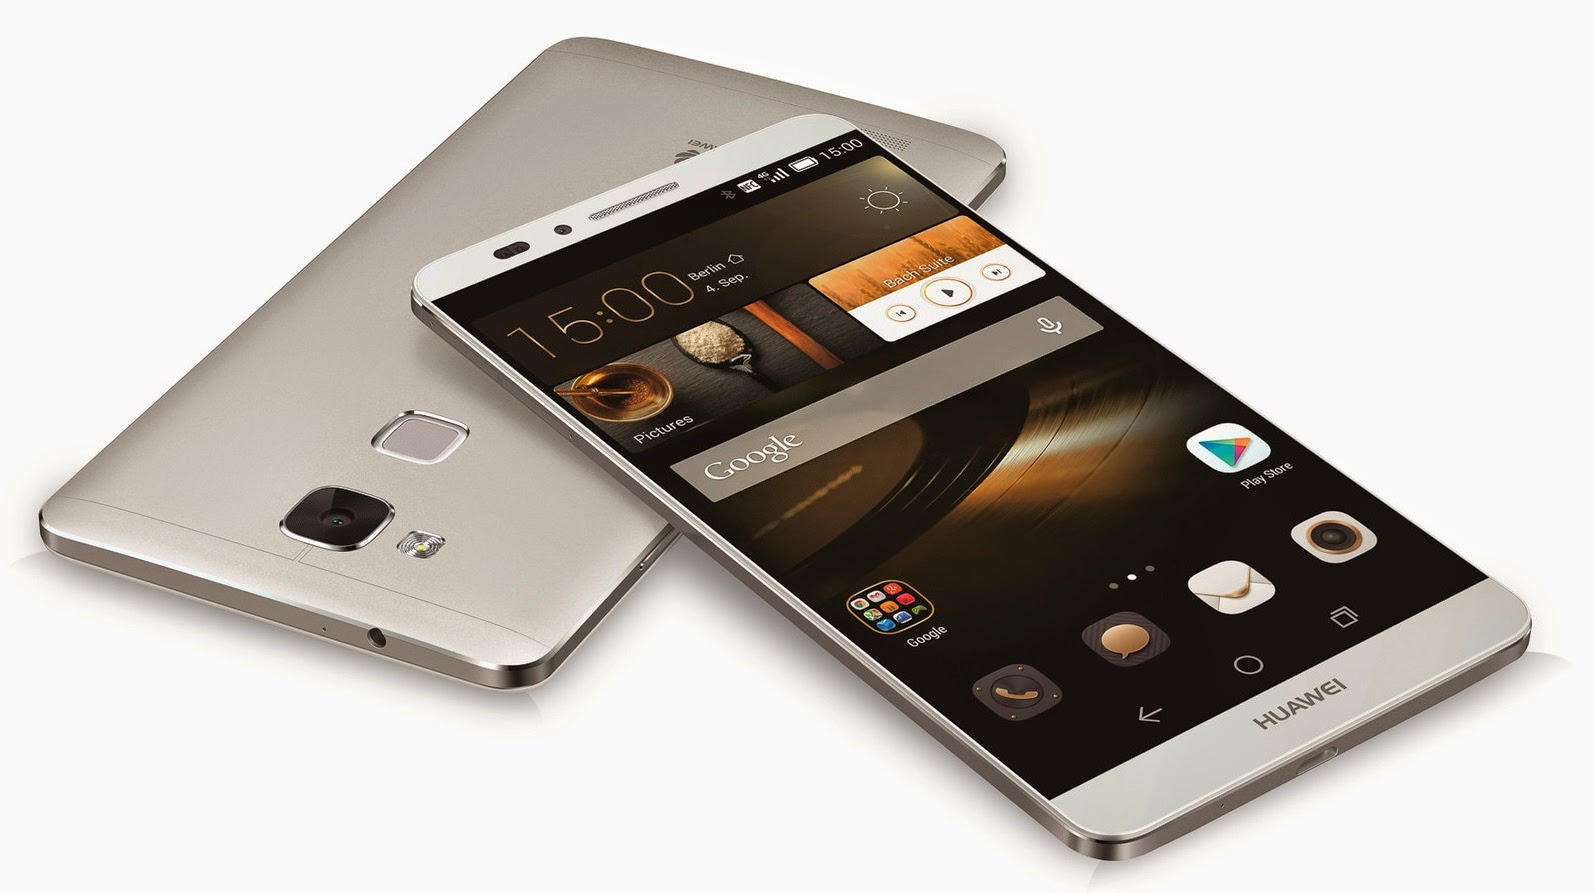 Huawei ascend mate 7 vs oppo find 7, Huawei Ascend Mate 7 vs Oppo Find 7a: 98 facts in comparison